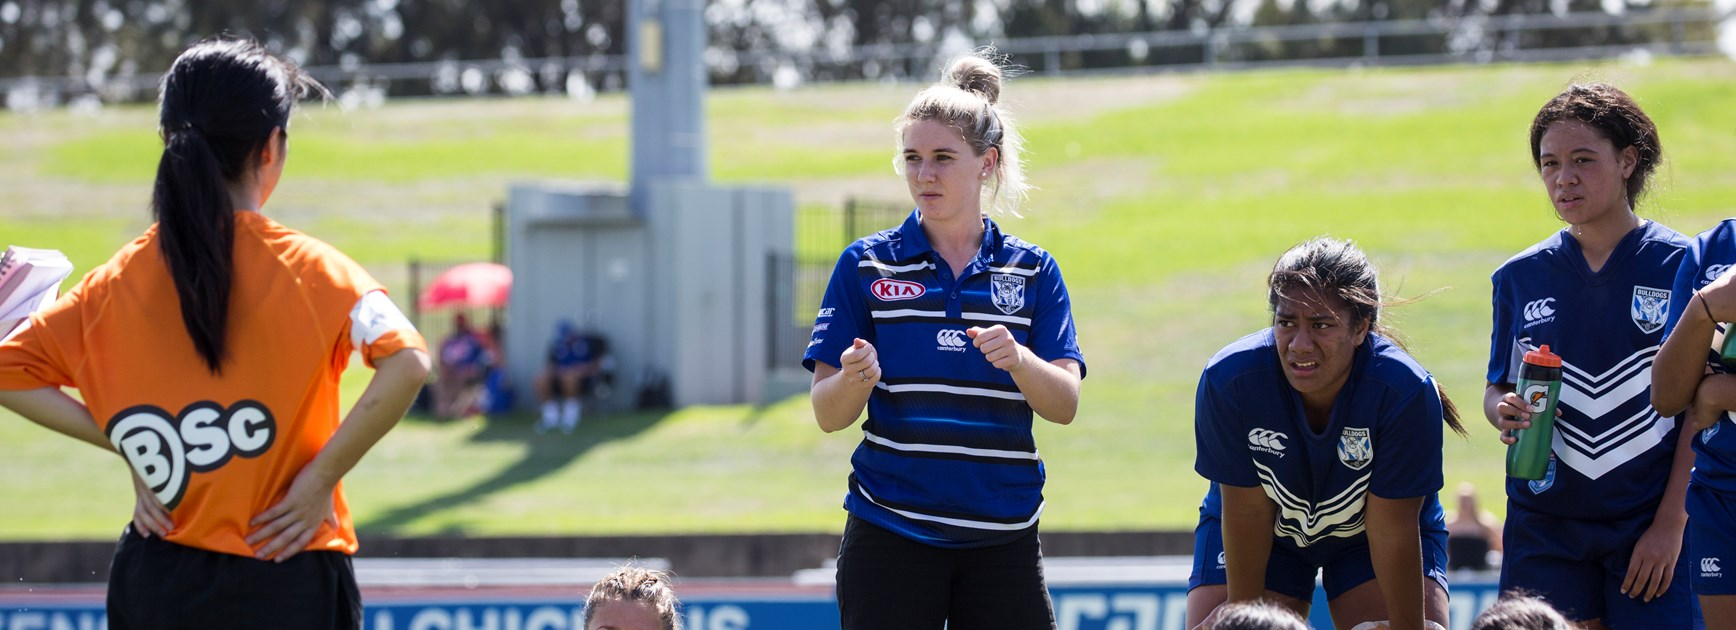 Janssen Leading the Way for Female Coaches